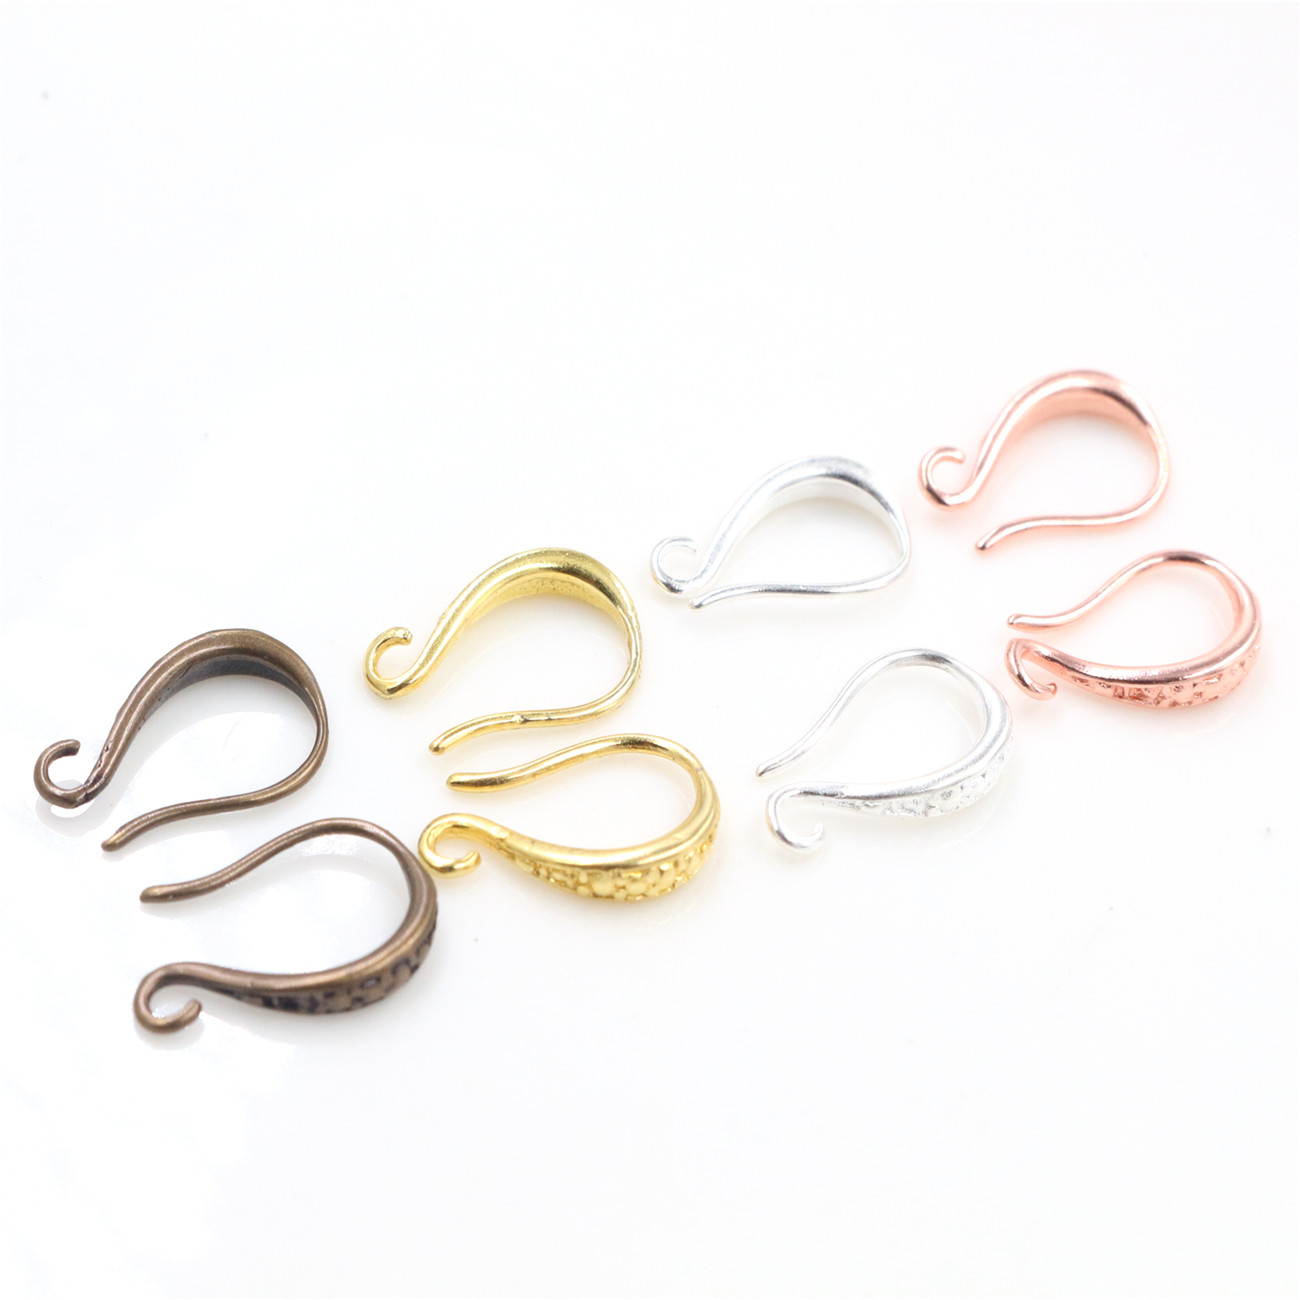 15x10mm 20pcs (10 Pair) High Quality Silver Bronze Rose Gold Plated Brass Earring Hooks Wire Settings Base Settings Whole Sale